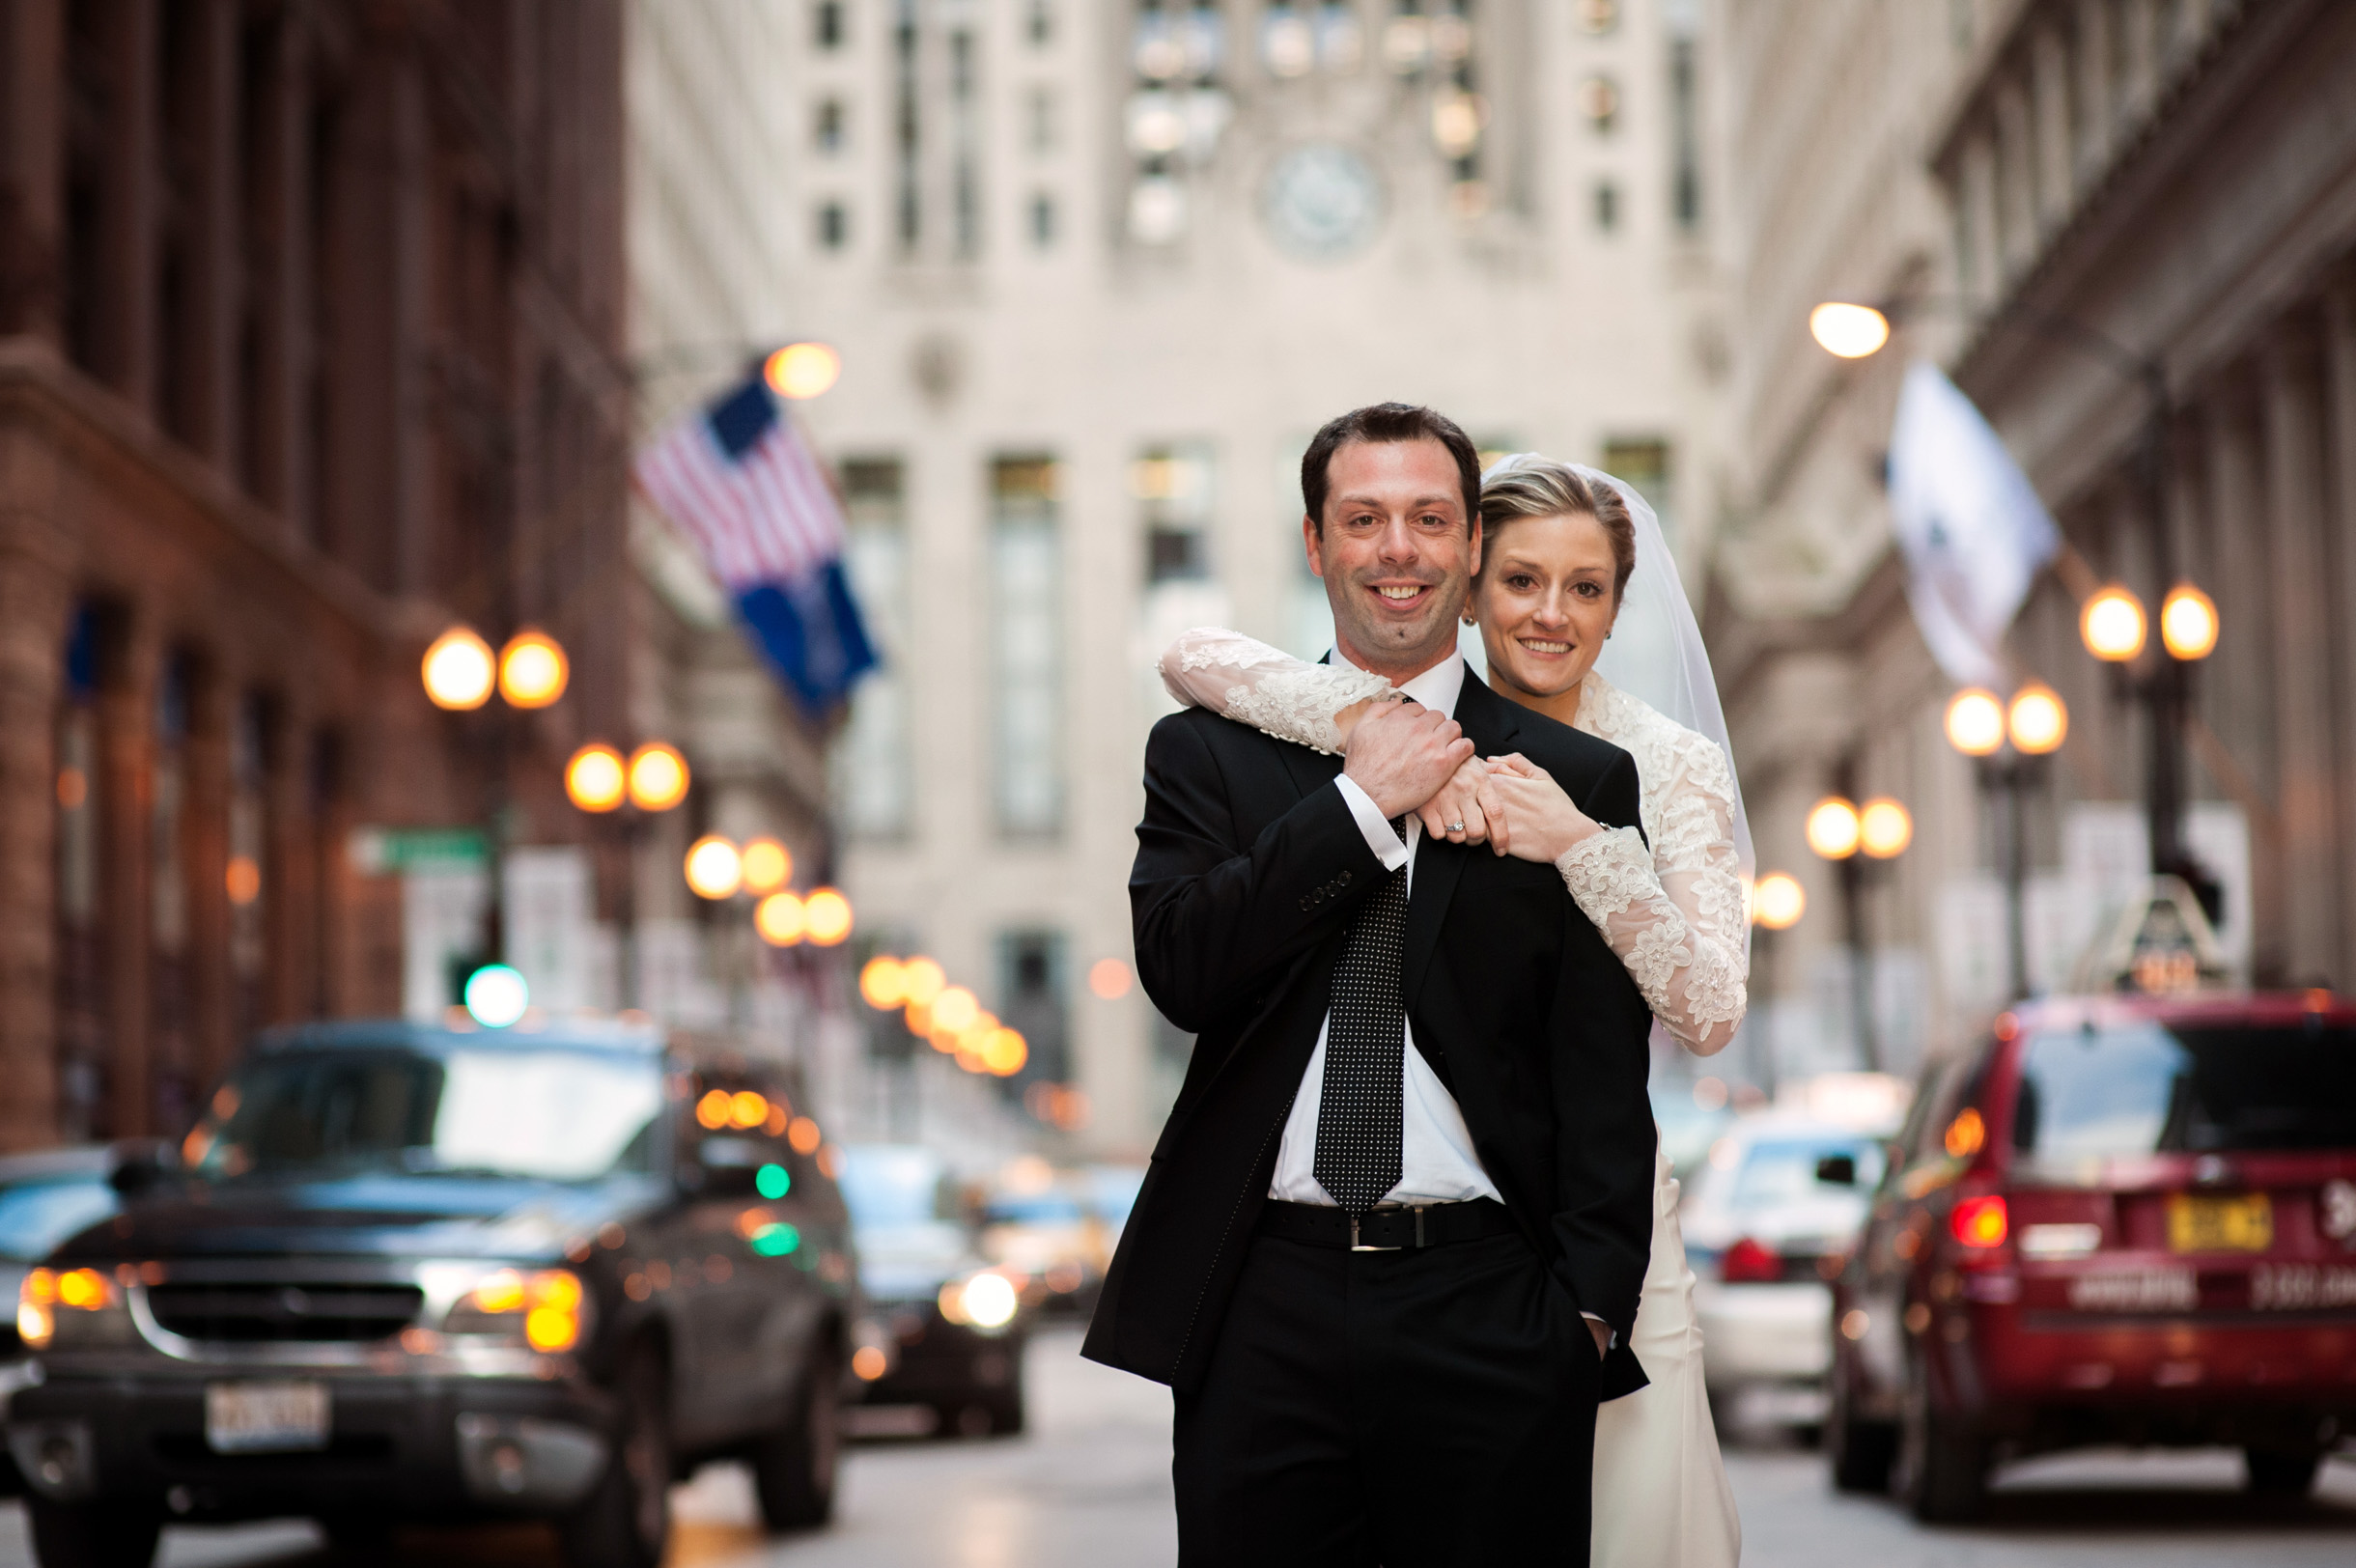 Bride and Groom at Chicago Board of Trade in traffic on LaSalle Street